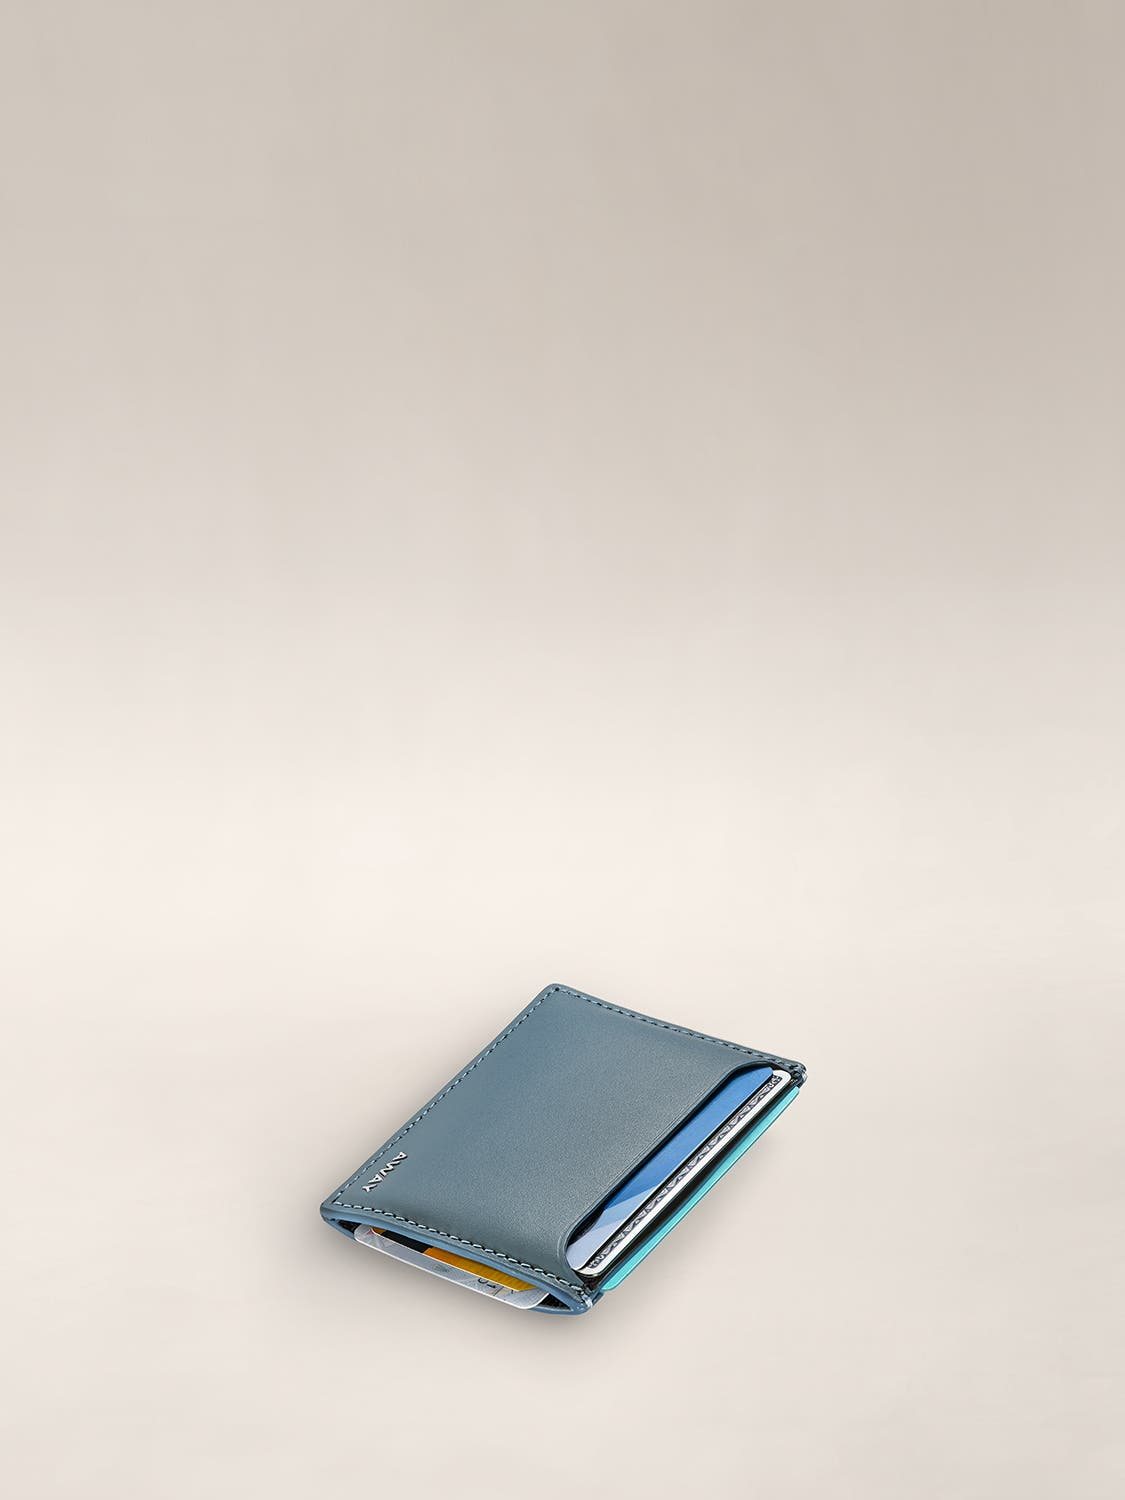 Horizontal view of a slim card holder with cards inserted in various top and side panel pockets.